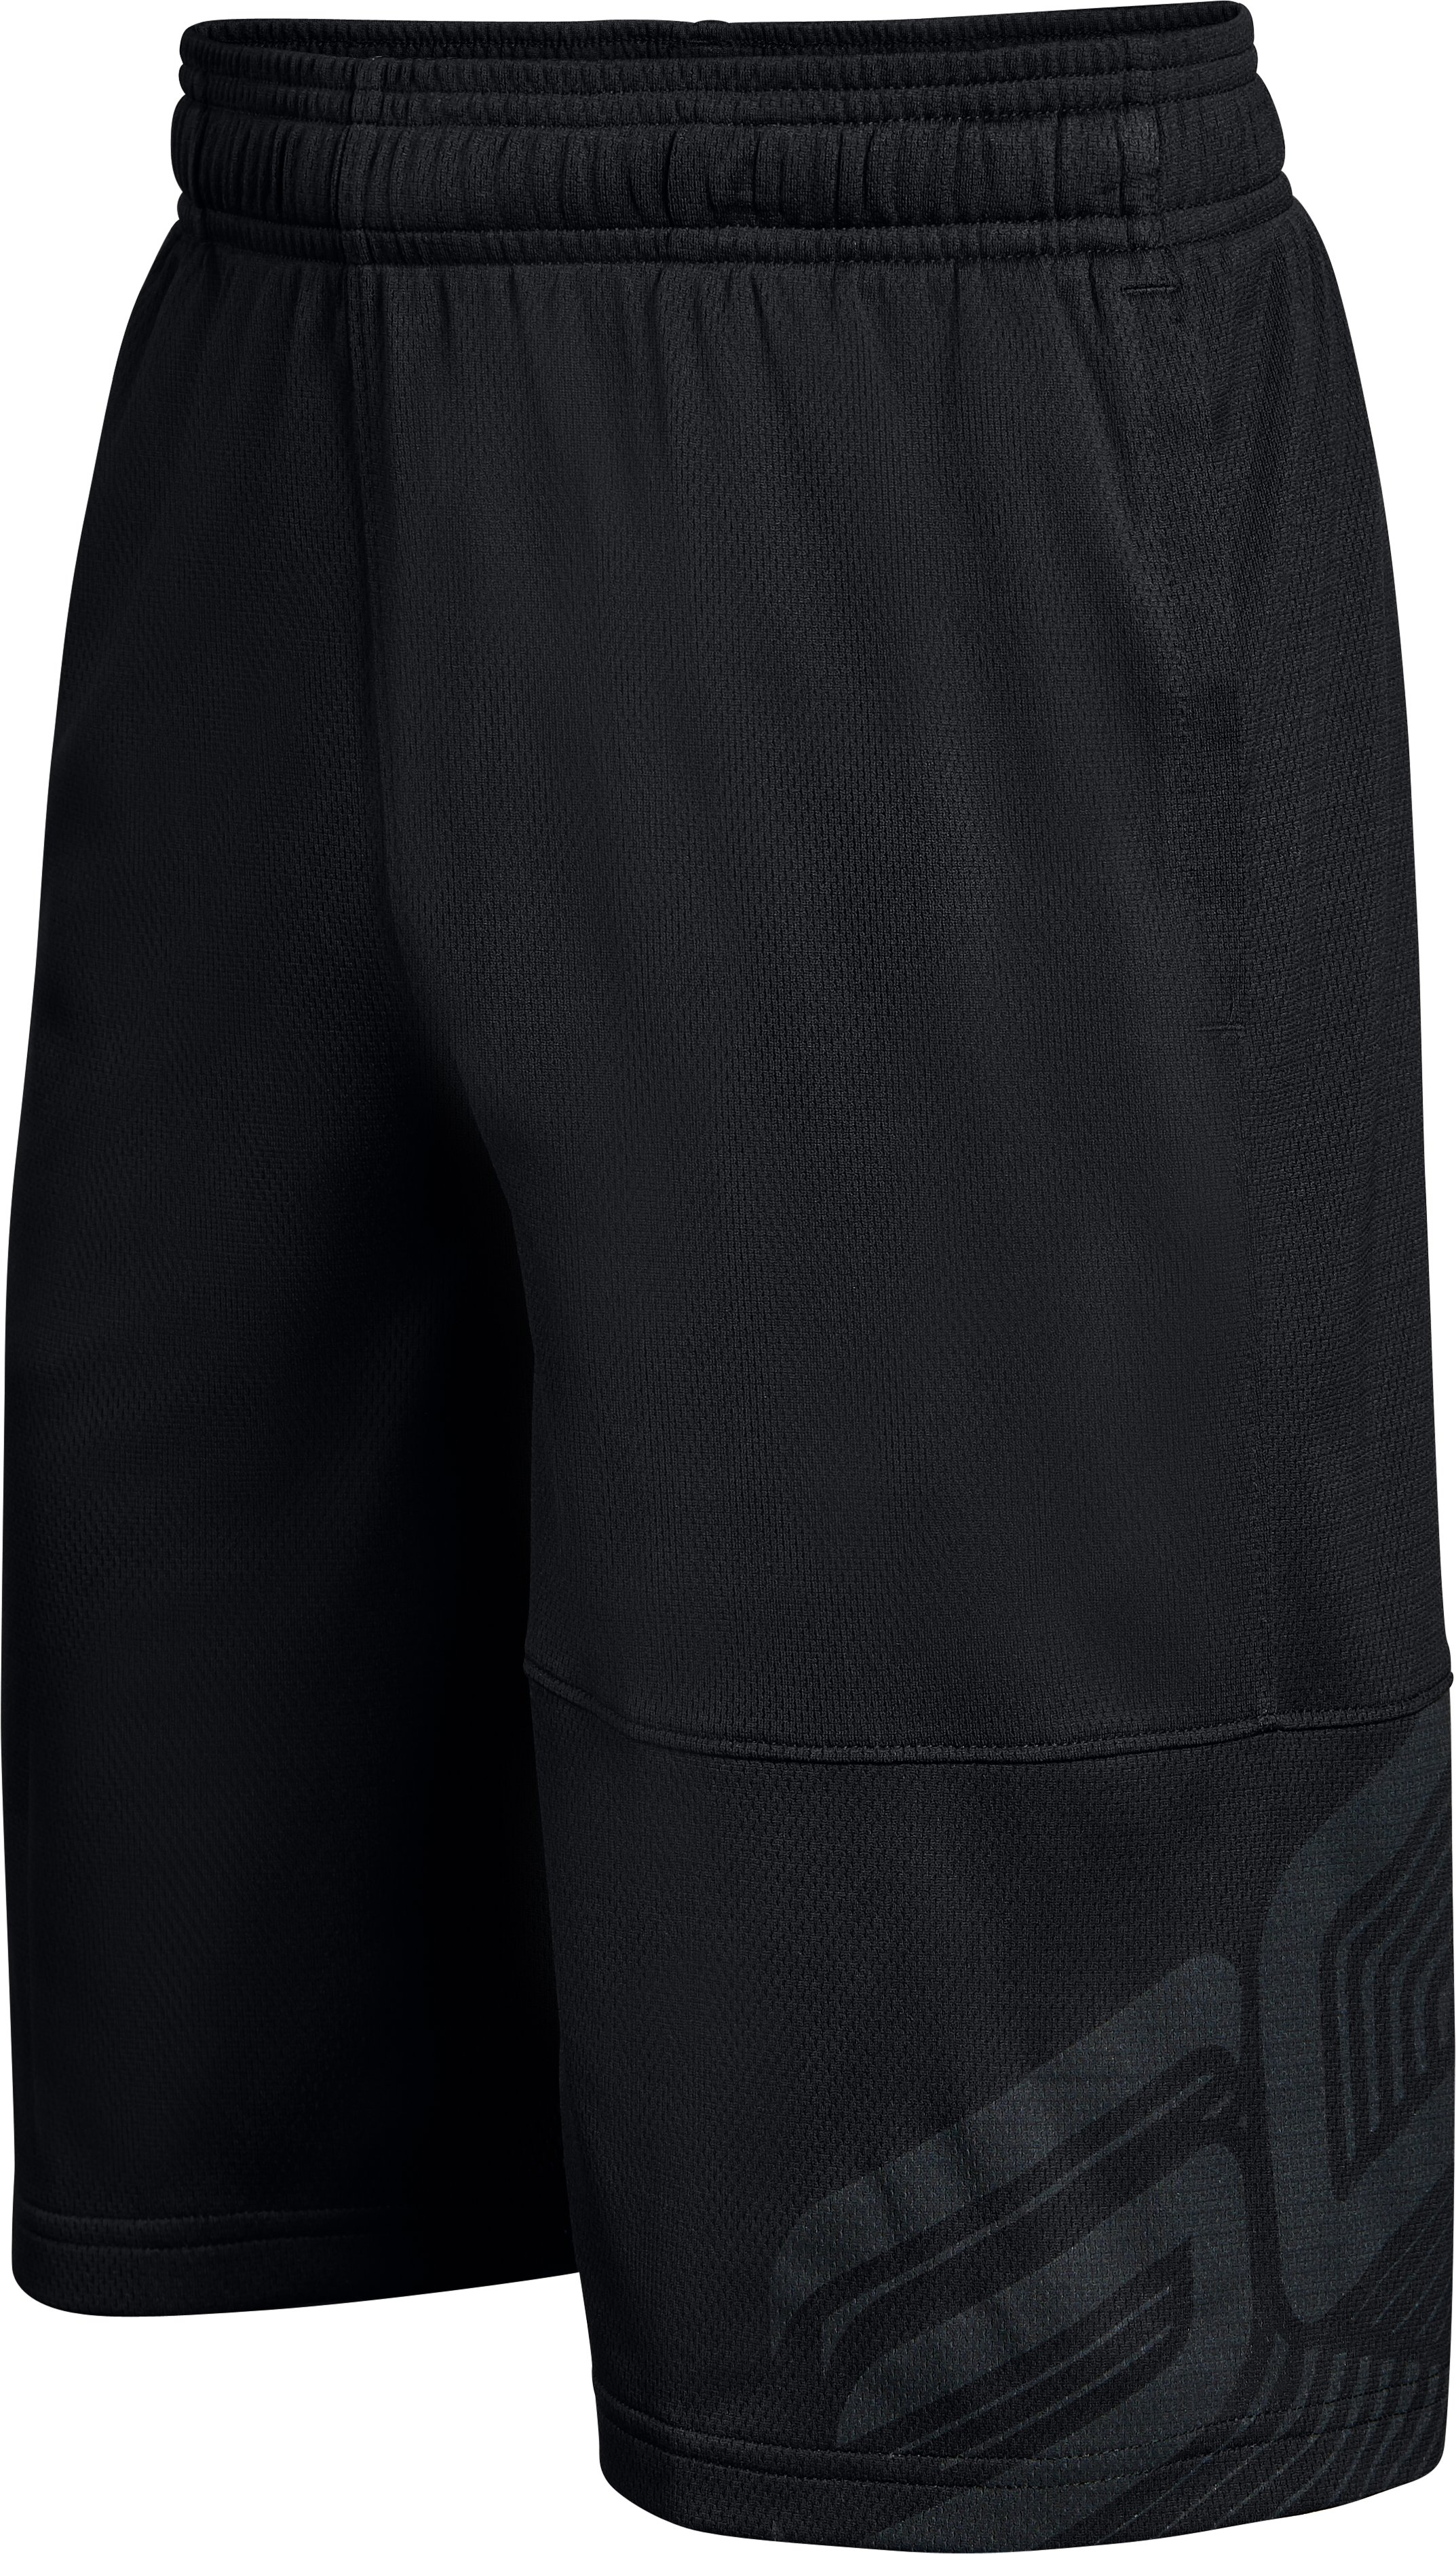 Boys' SC30 Shorts, Black , zoomed